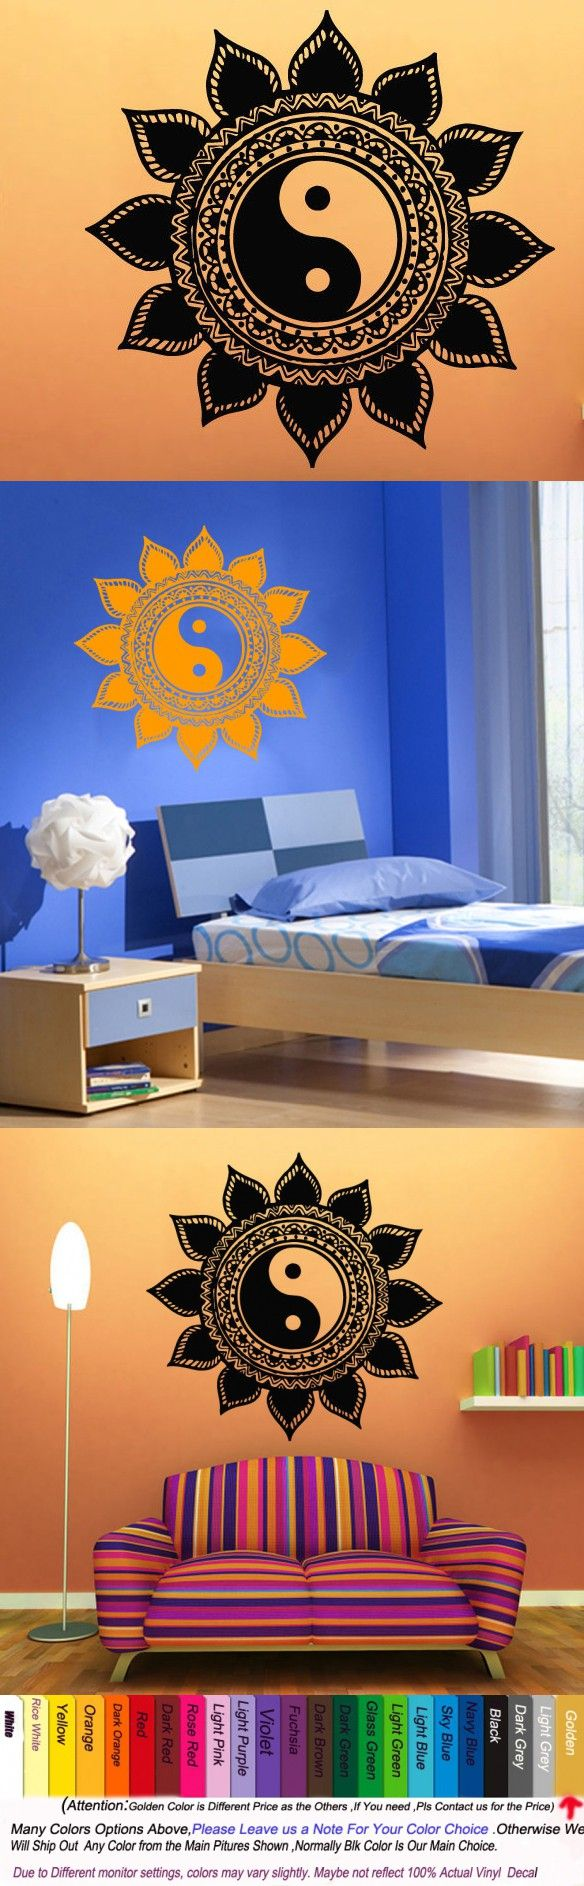 28 best blue room images on pinterest wall stickers home and yoga vinyl wall decal mandala sun flower indian yin yang home decor mural art wall sticker